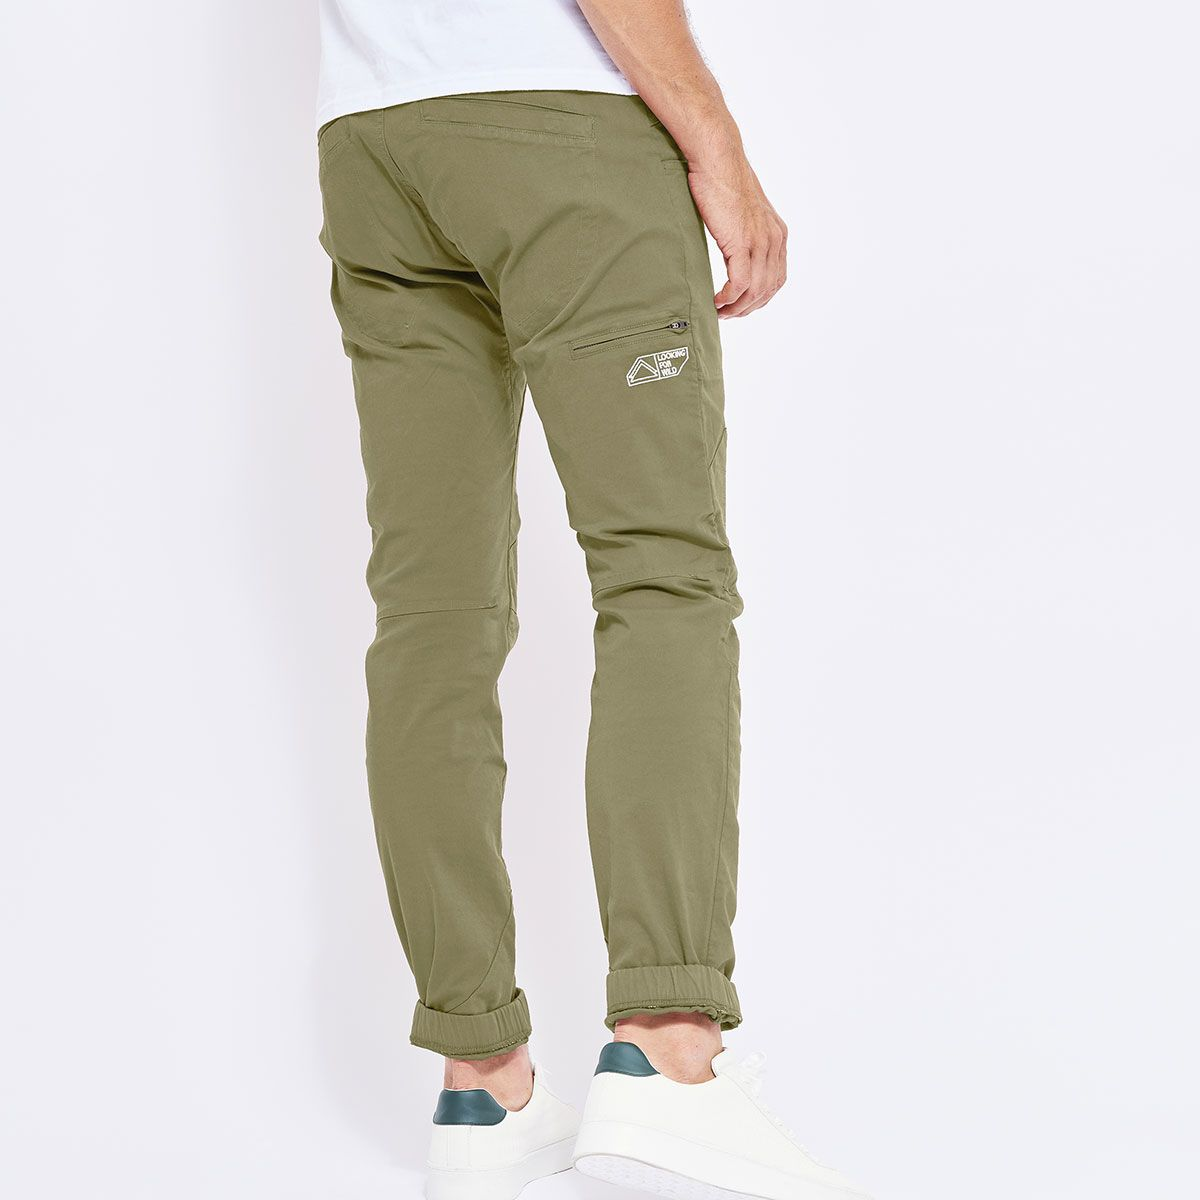 Pantalon d'escalade Homme Fitz Roy Hiver - LOOKING FOR WILD